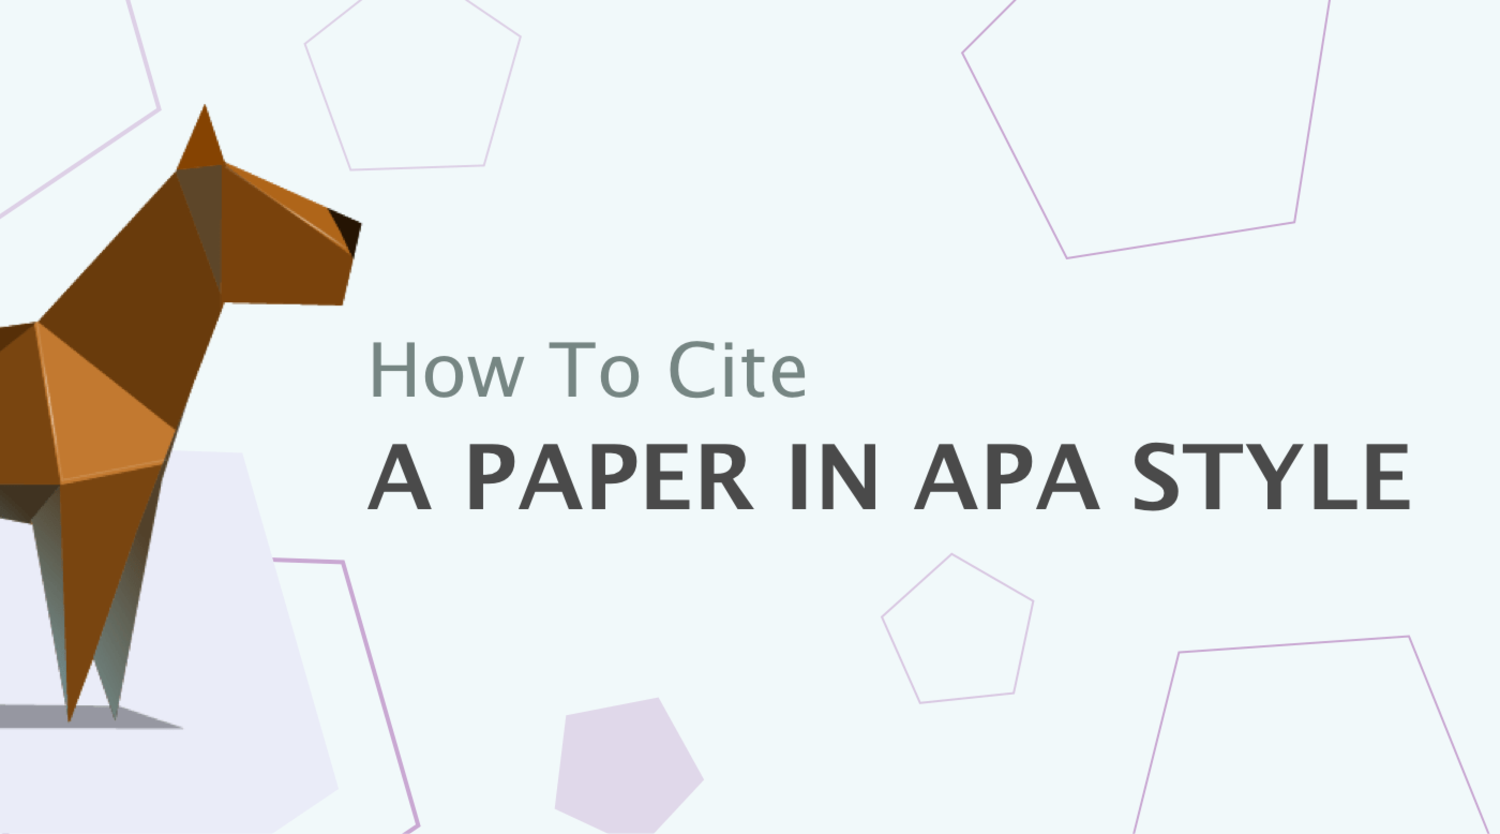 How to Cite a Paper in APA Style